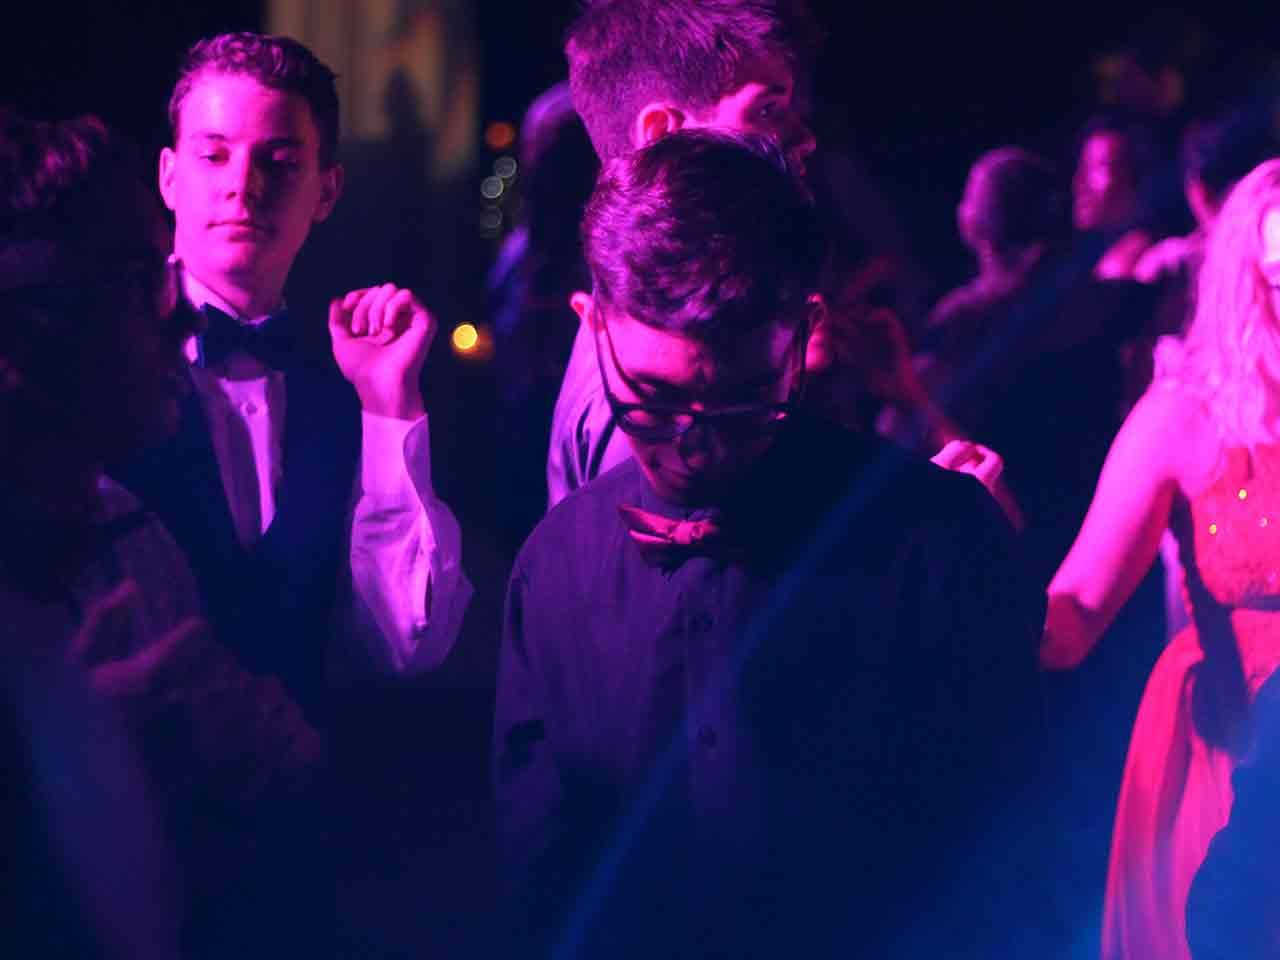 cheap private party dj services